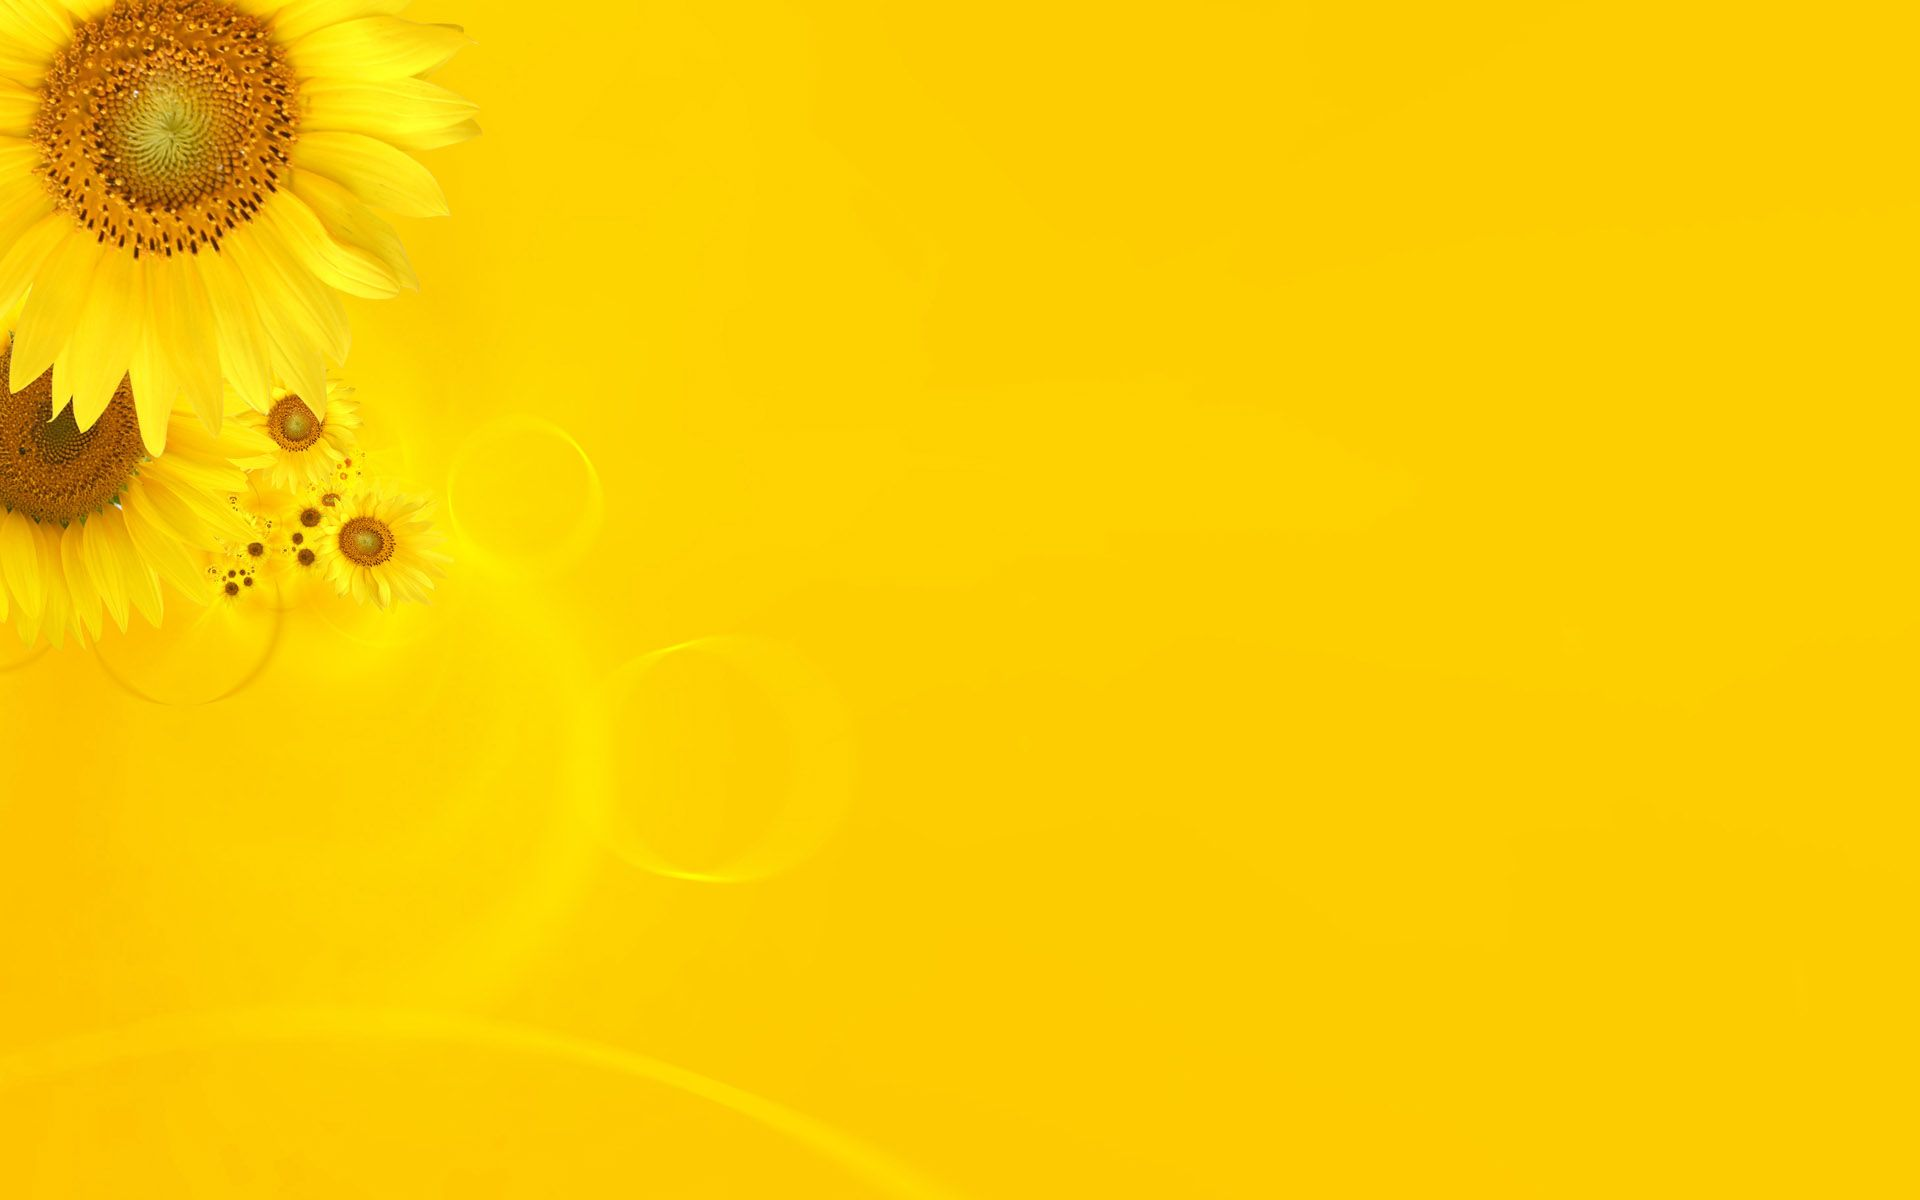 1920x1200 30 HD Yellow Wallpapers